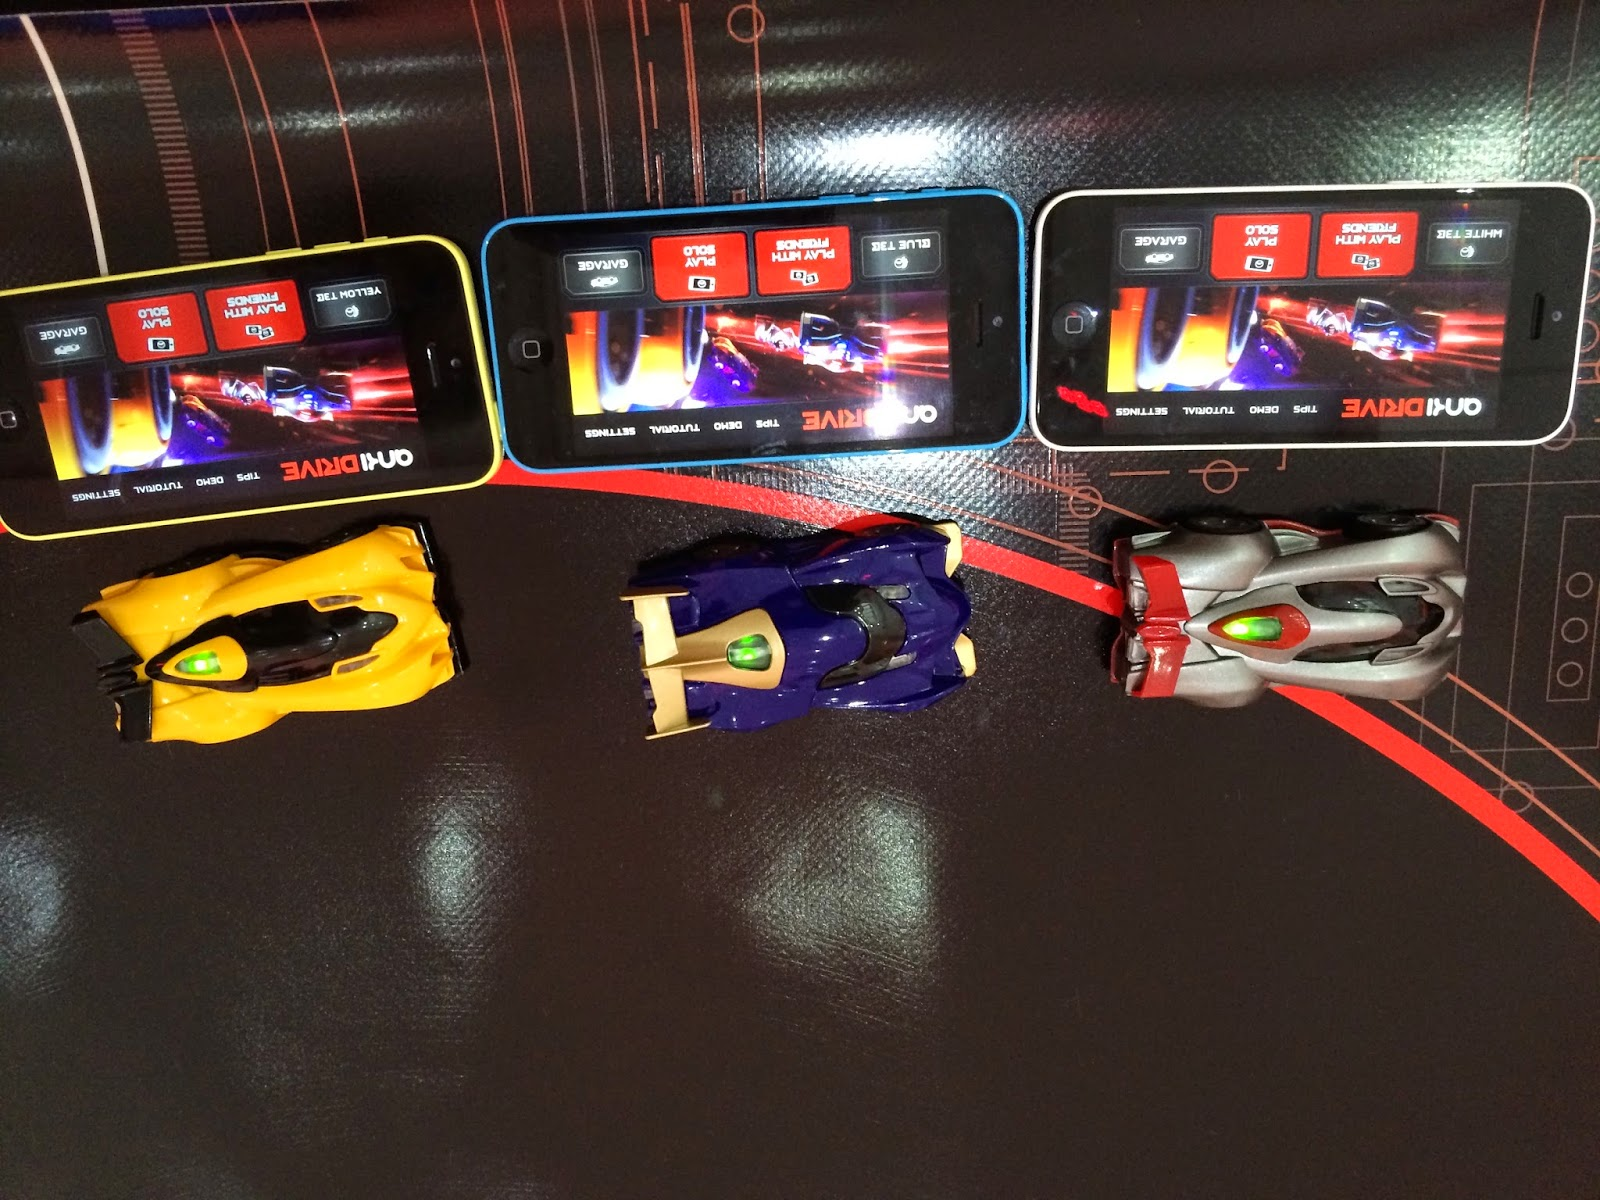 ankiDRIVE cars and iPhone 5c madmumof7.com